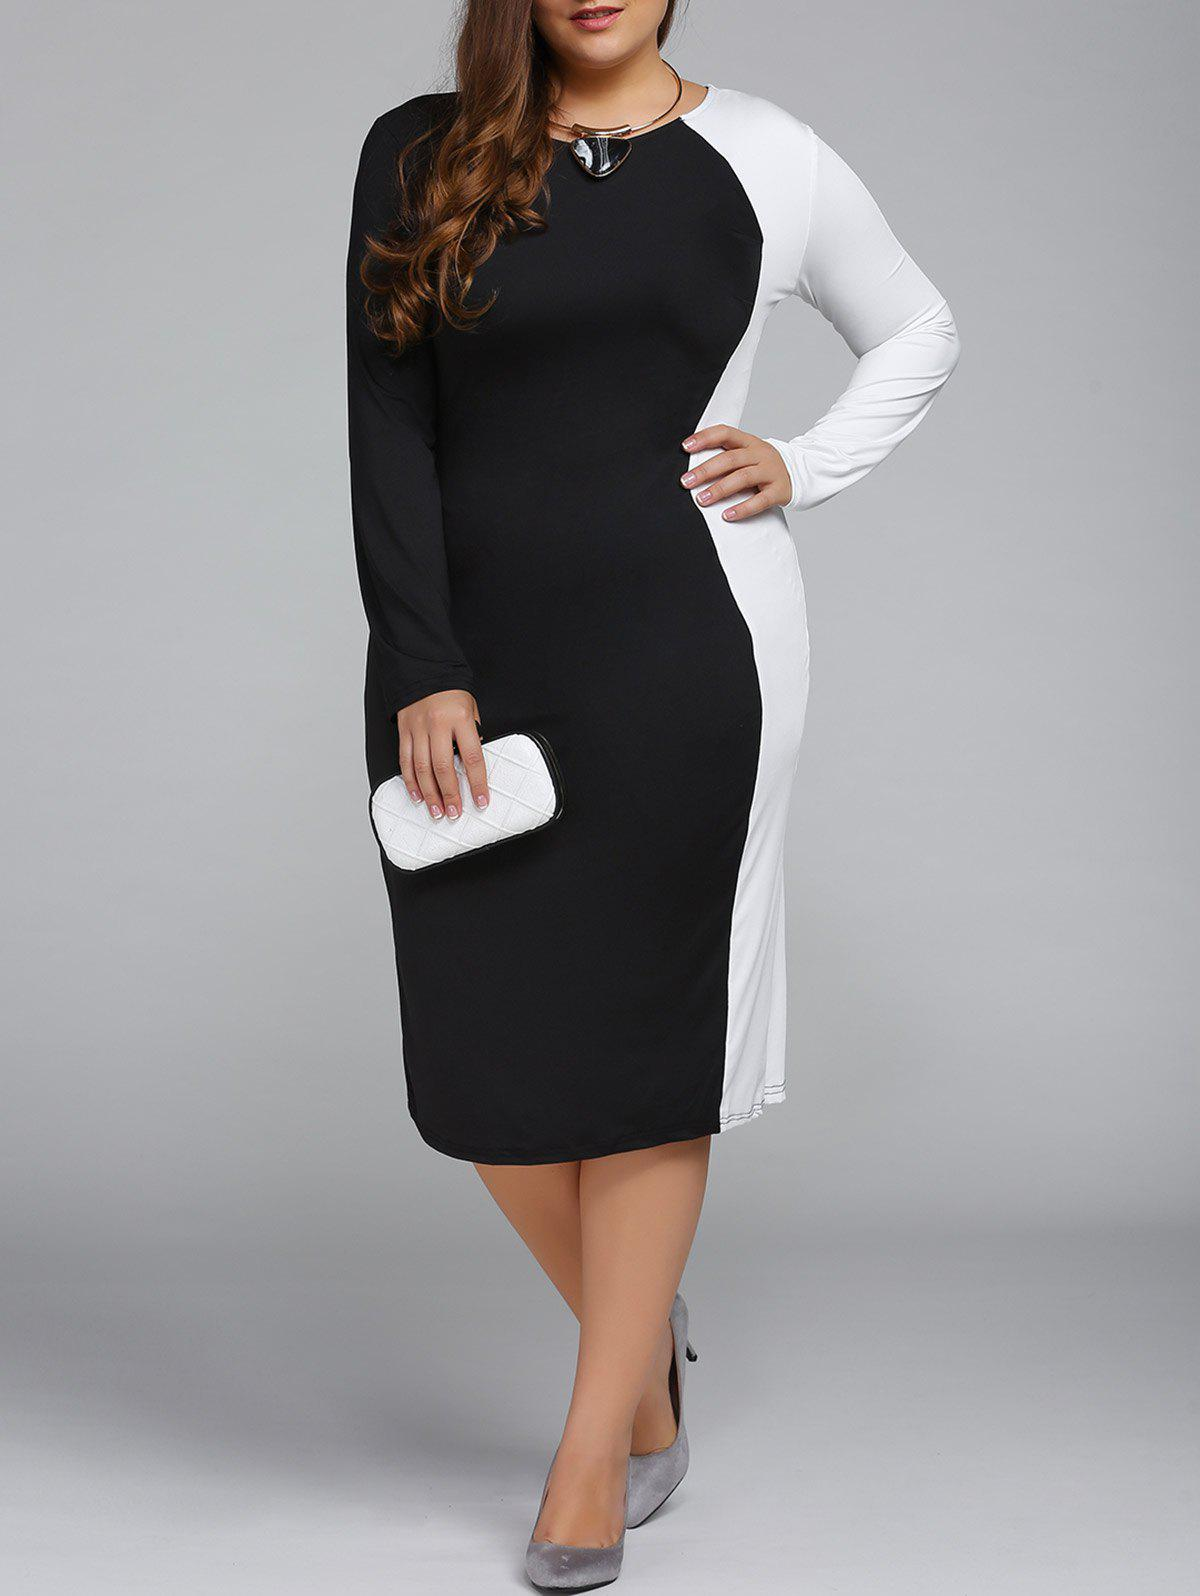 Plus Size Color Block Long Sleeve Sheath Modest Work DressWOMEN<br><br>Size: 5XL; Color: BLACK; Style: Brief; Material: Cotton Blend; Silhouette: Sheath; Dresses Length: Knee-Length; Neckline: Round Collar; Sleeve Length: Long Sleeves; Pattern Type: Patchwork; Elasticity: Elastic; With Belt: No; Season: Fall,Spring; Weight: 0.309kg; Package Contents: 1 x Dress;